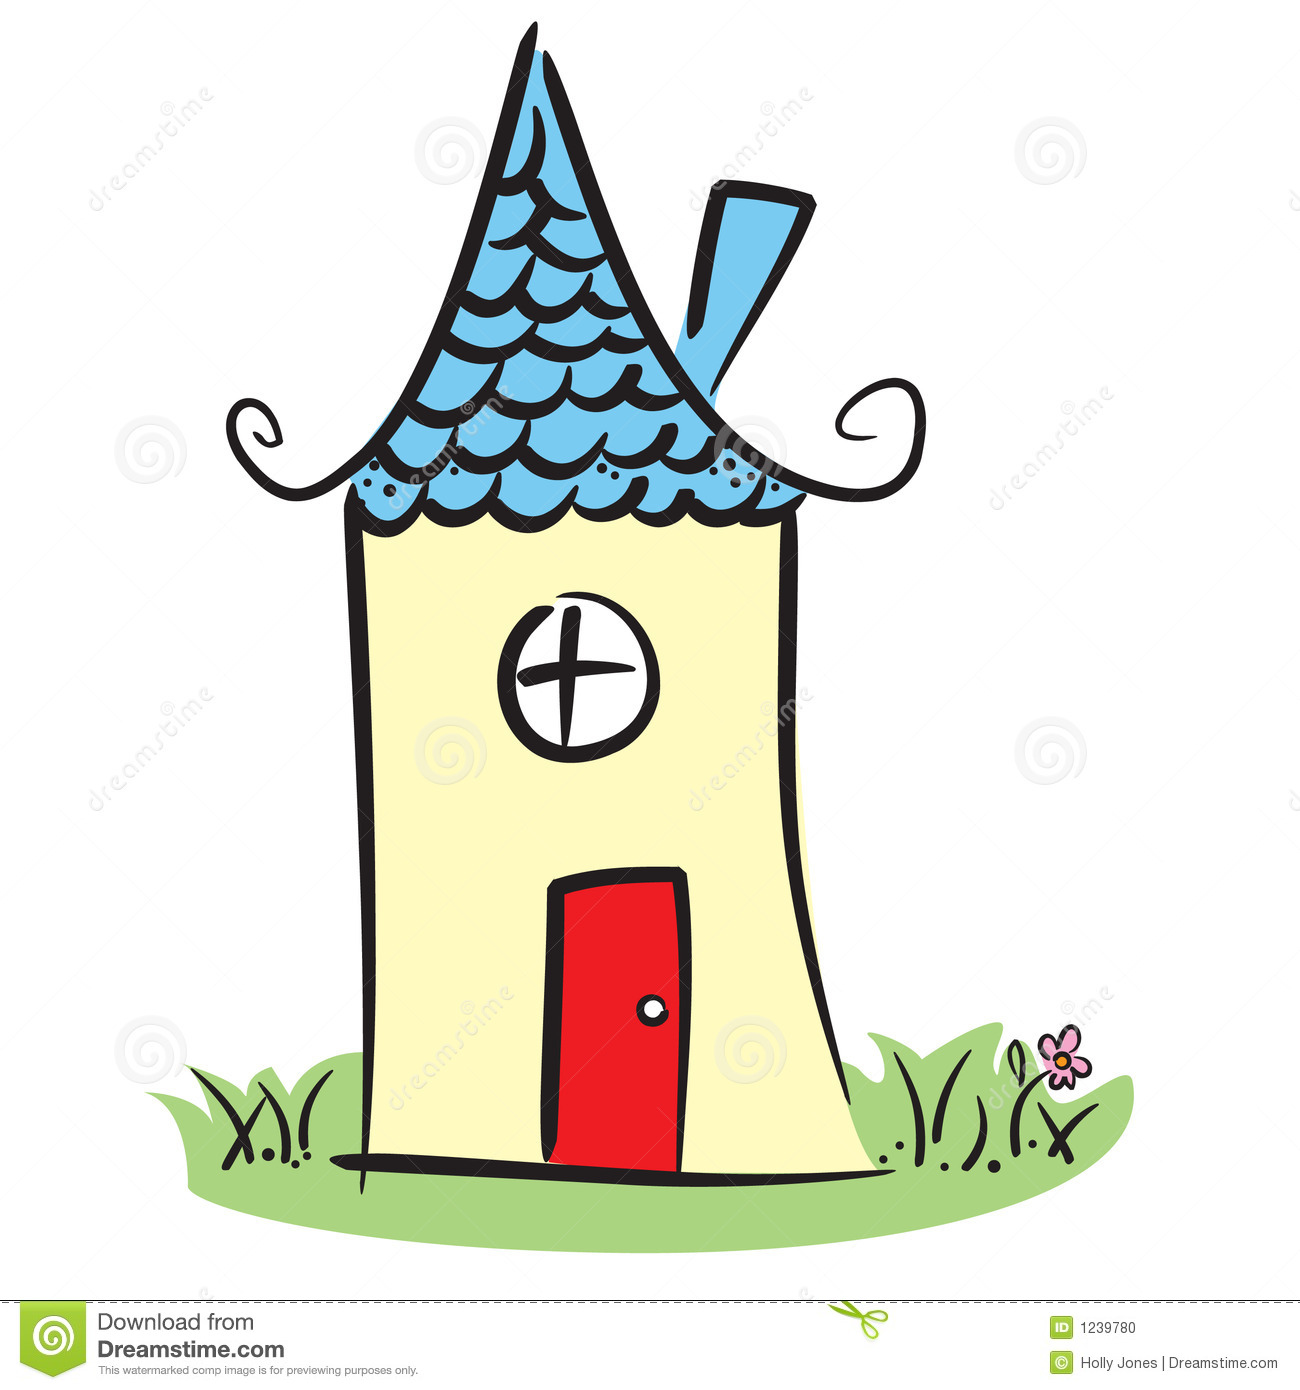 Hosue clipart cute Cute Clipart Clipart cute%20house%20illustration House